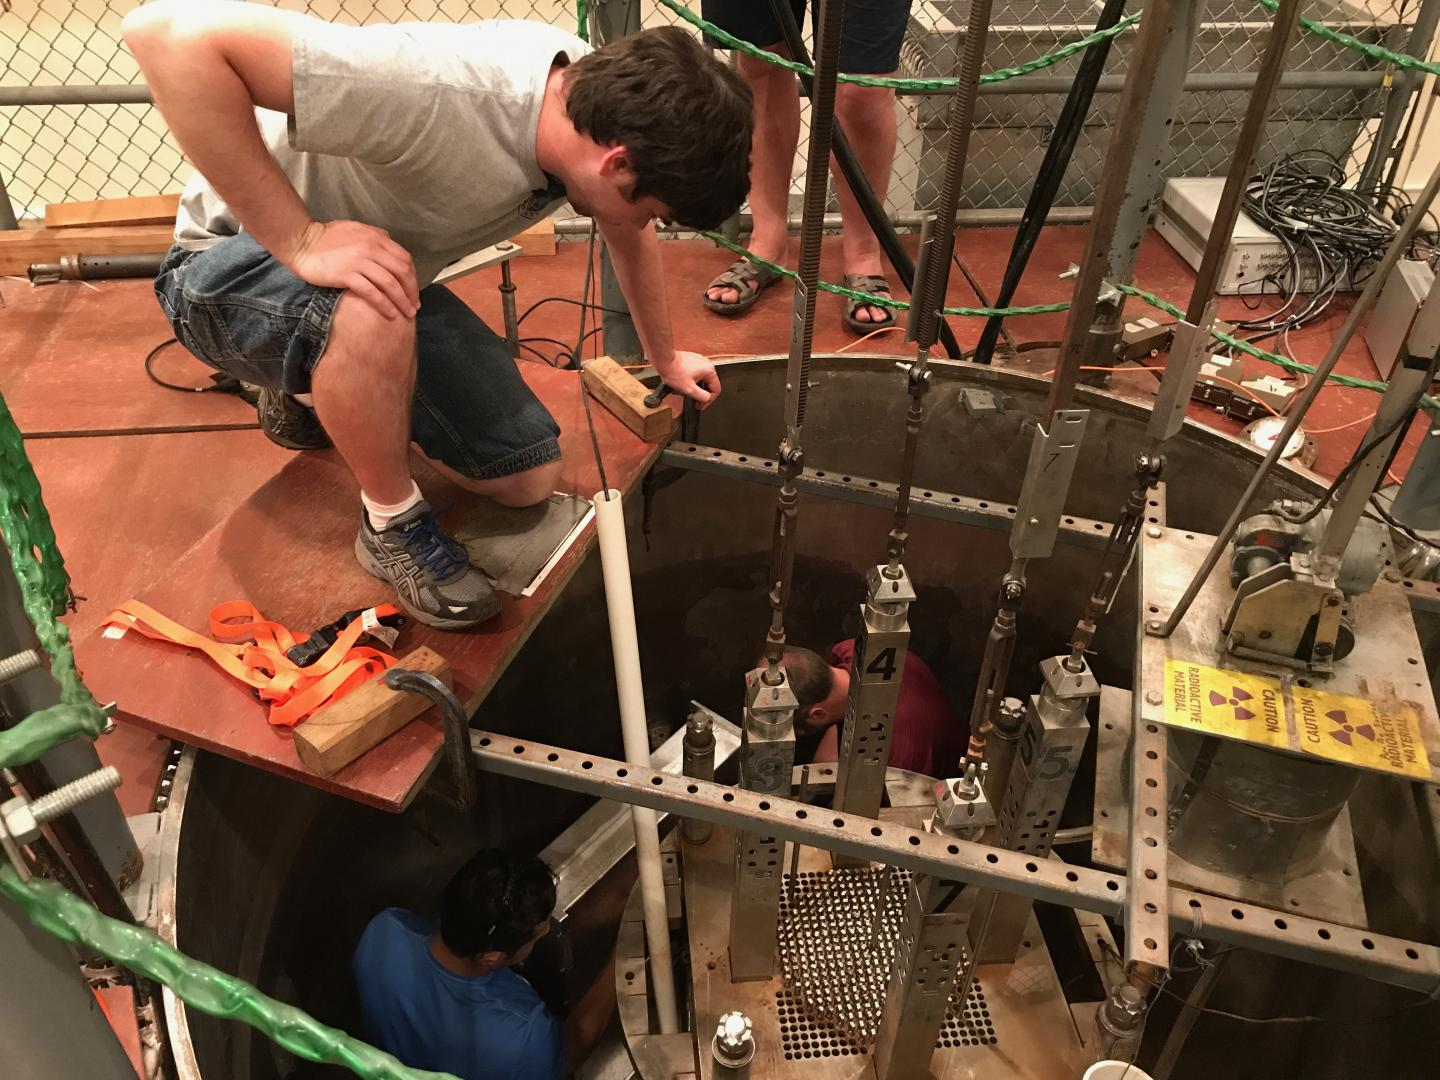 Neutron-clustering effect in nuclear reactors demonstrated for first time